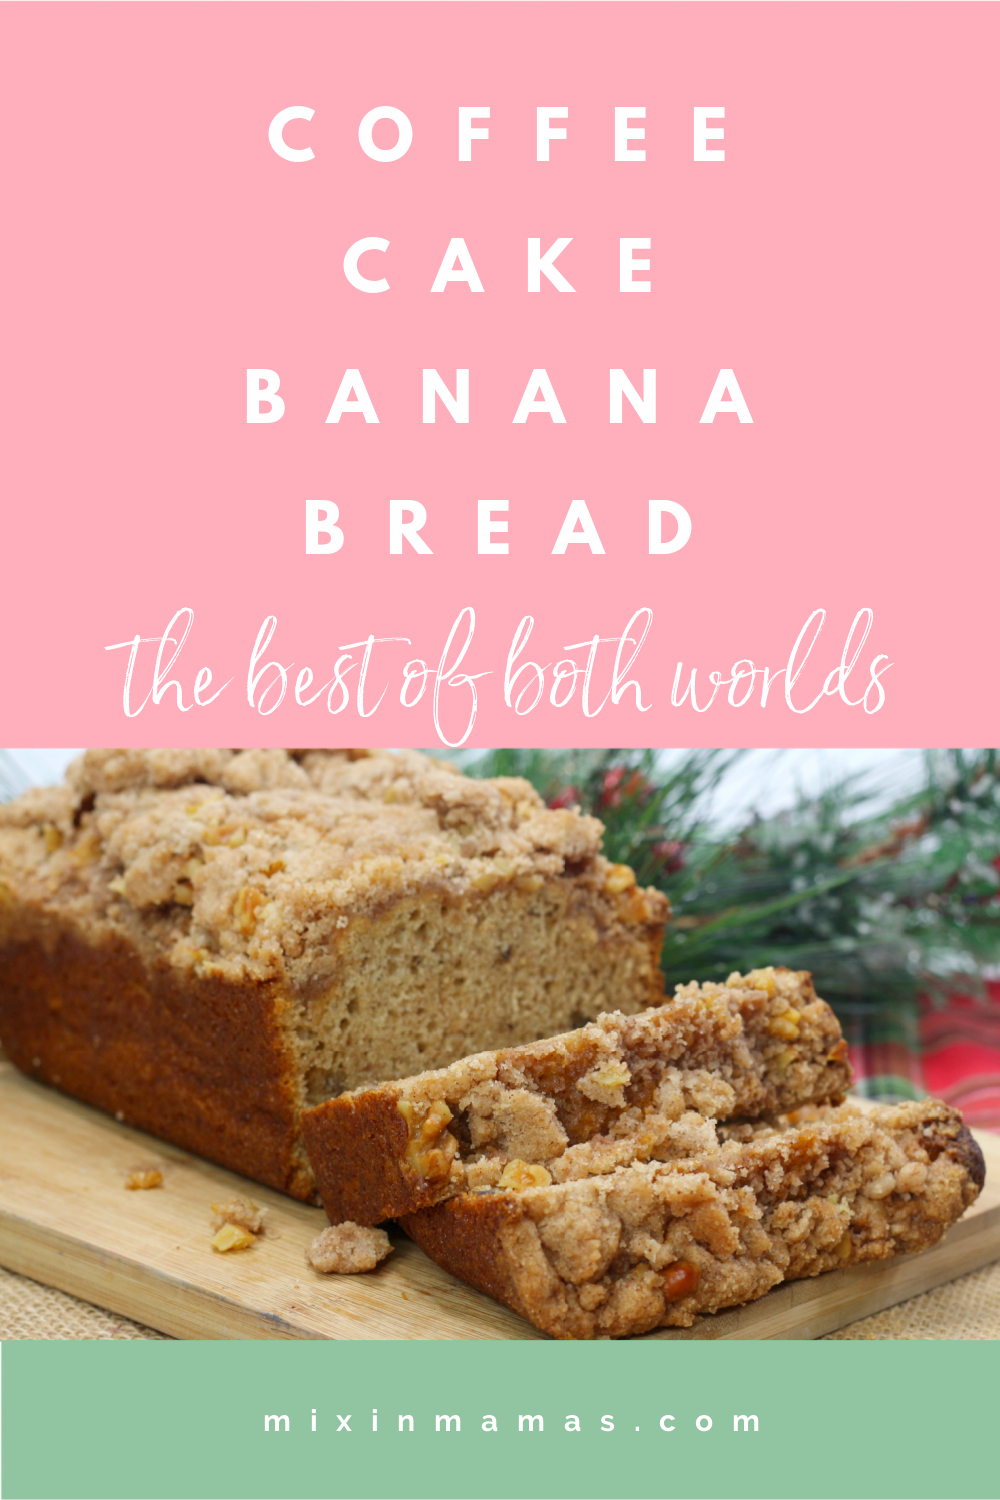 coffee cake banana bread: the best of both worlds